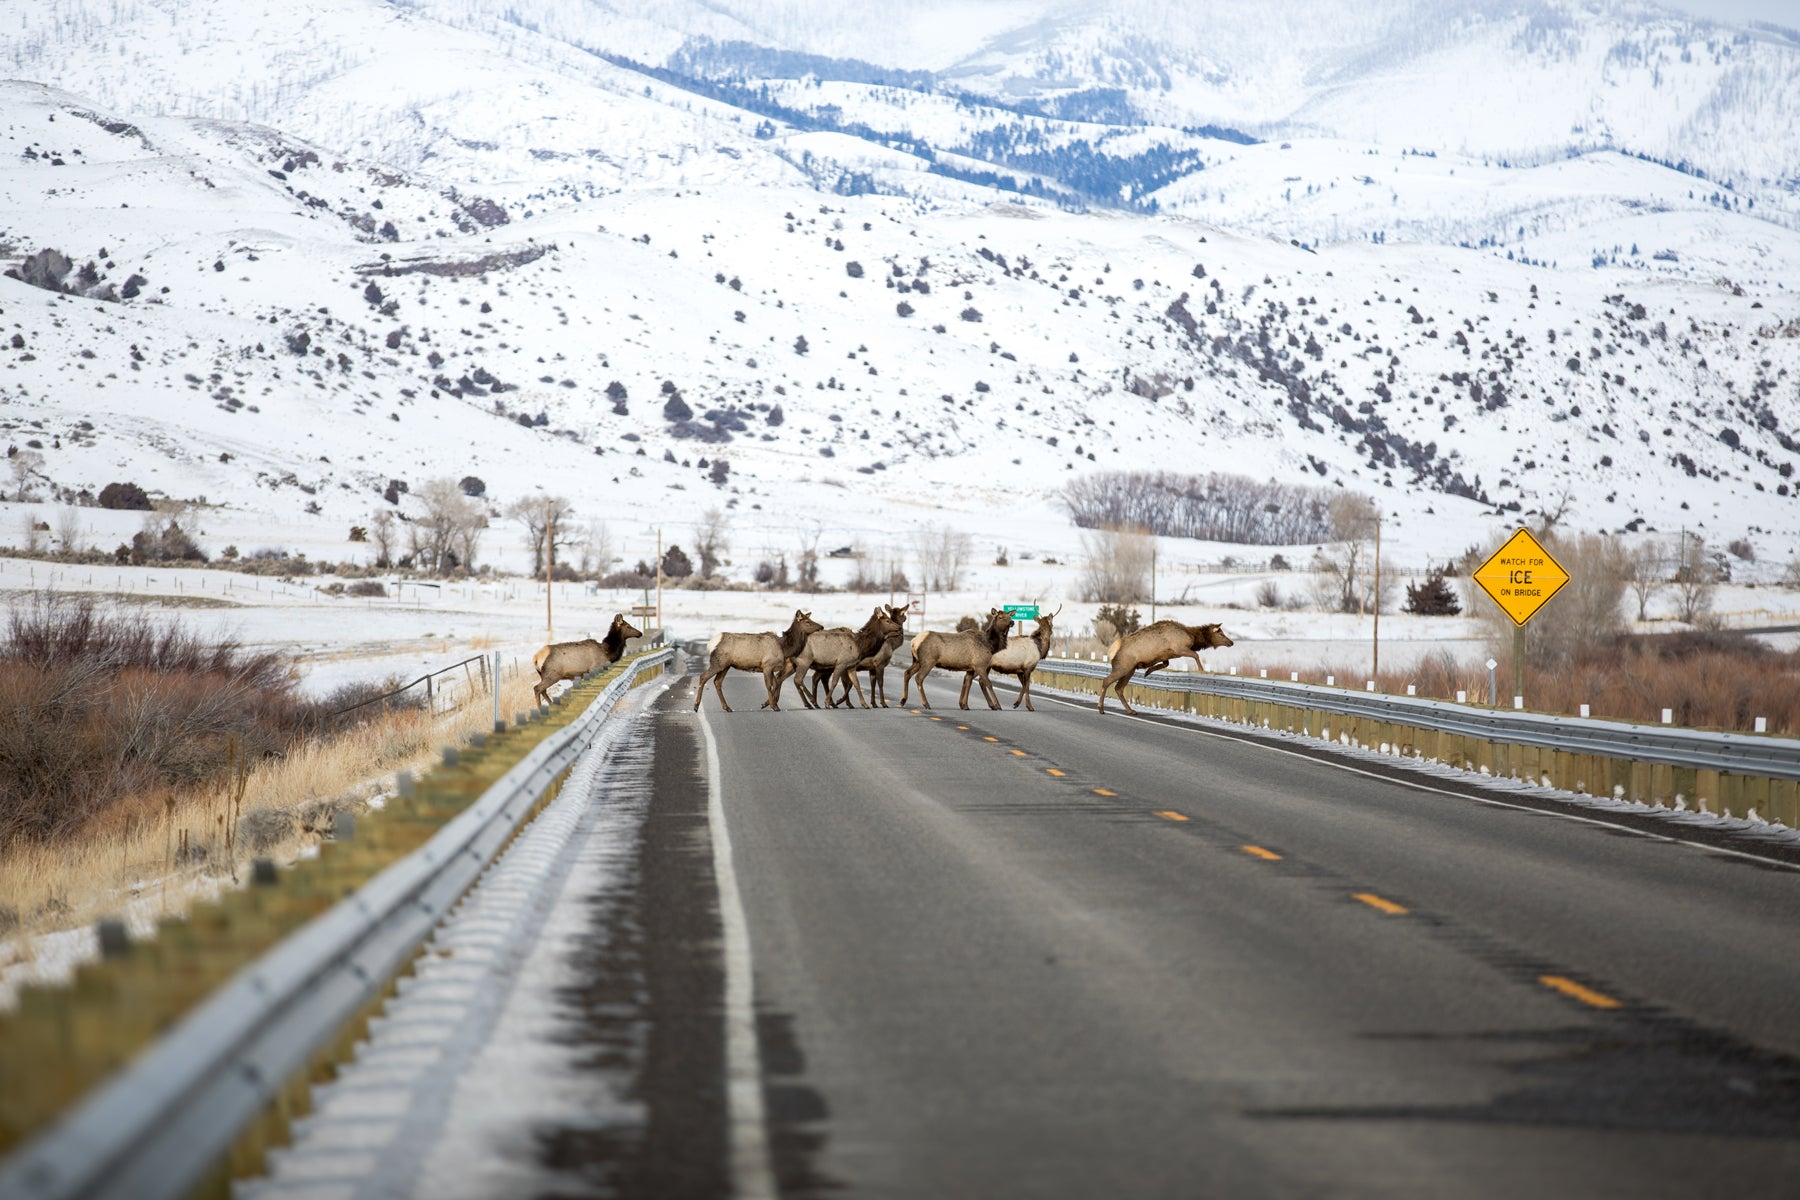 Elk herd crossing the road in front of snowy mountains in Paradise Valley.